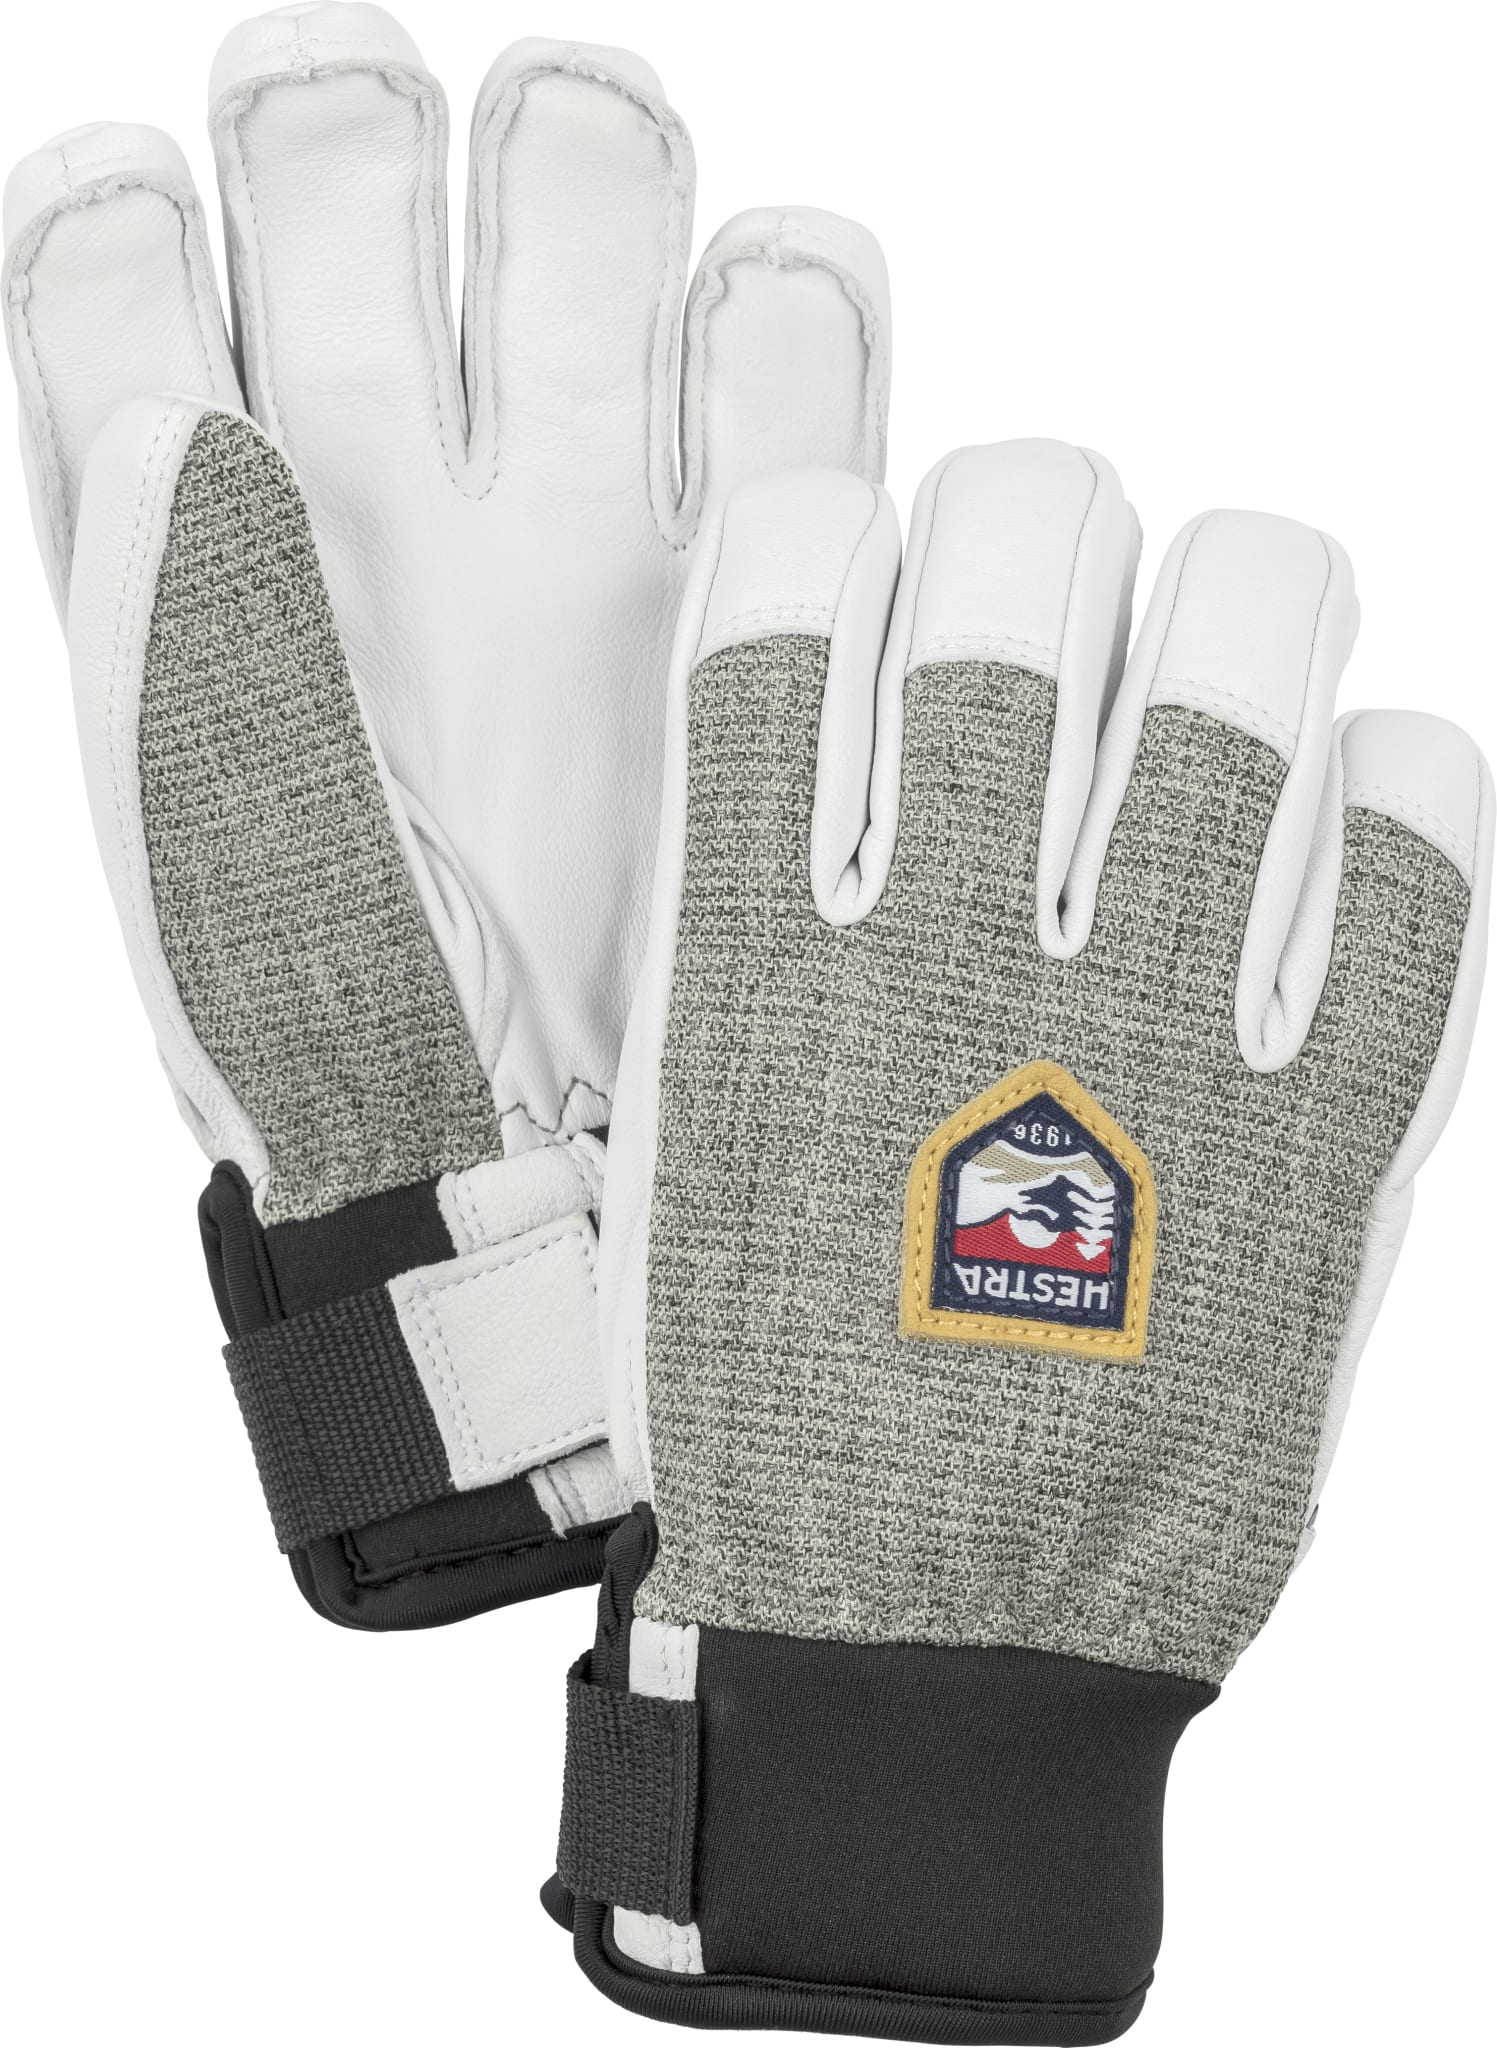 Army Leather Patrol Jr Gloves